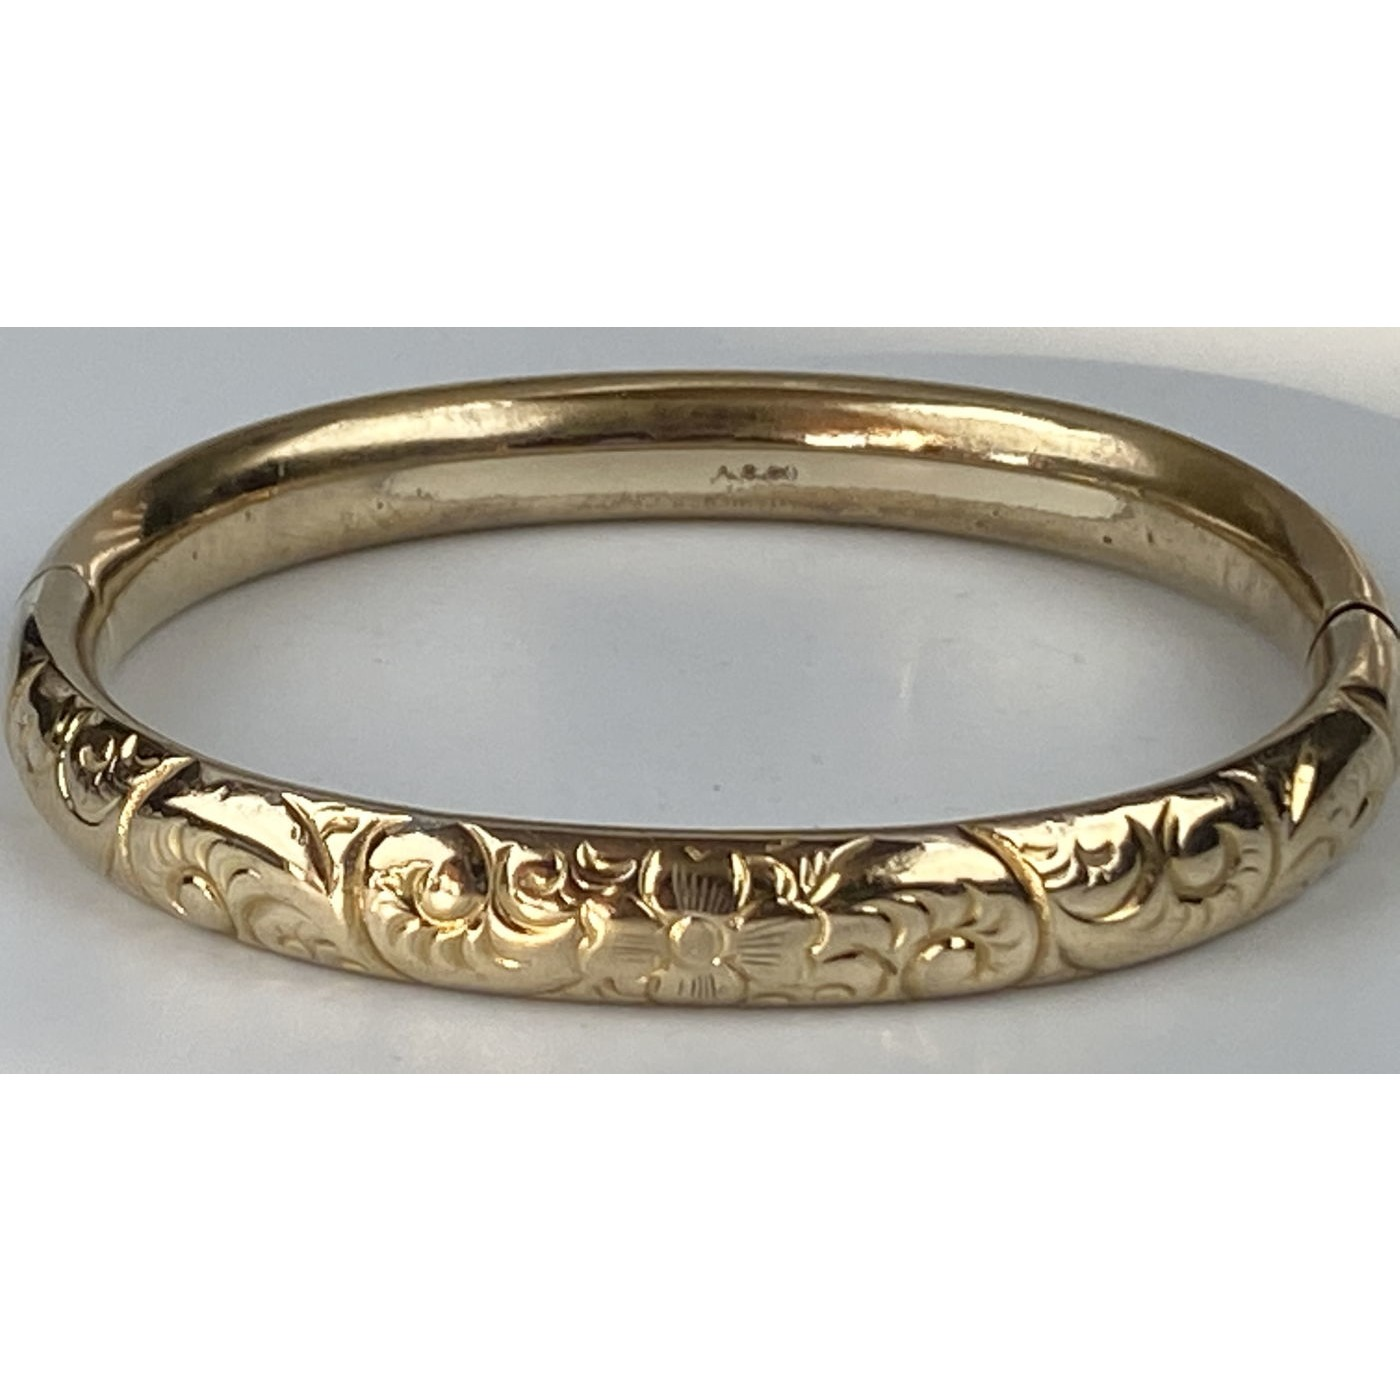 Smaller Than Average, Deeply Engraved Swirls Engagement Bangle